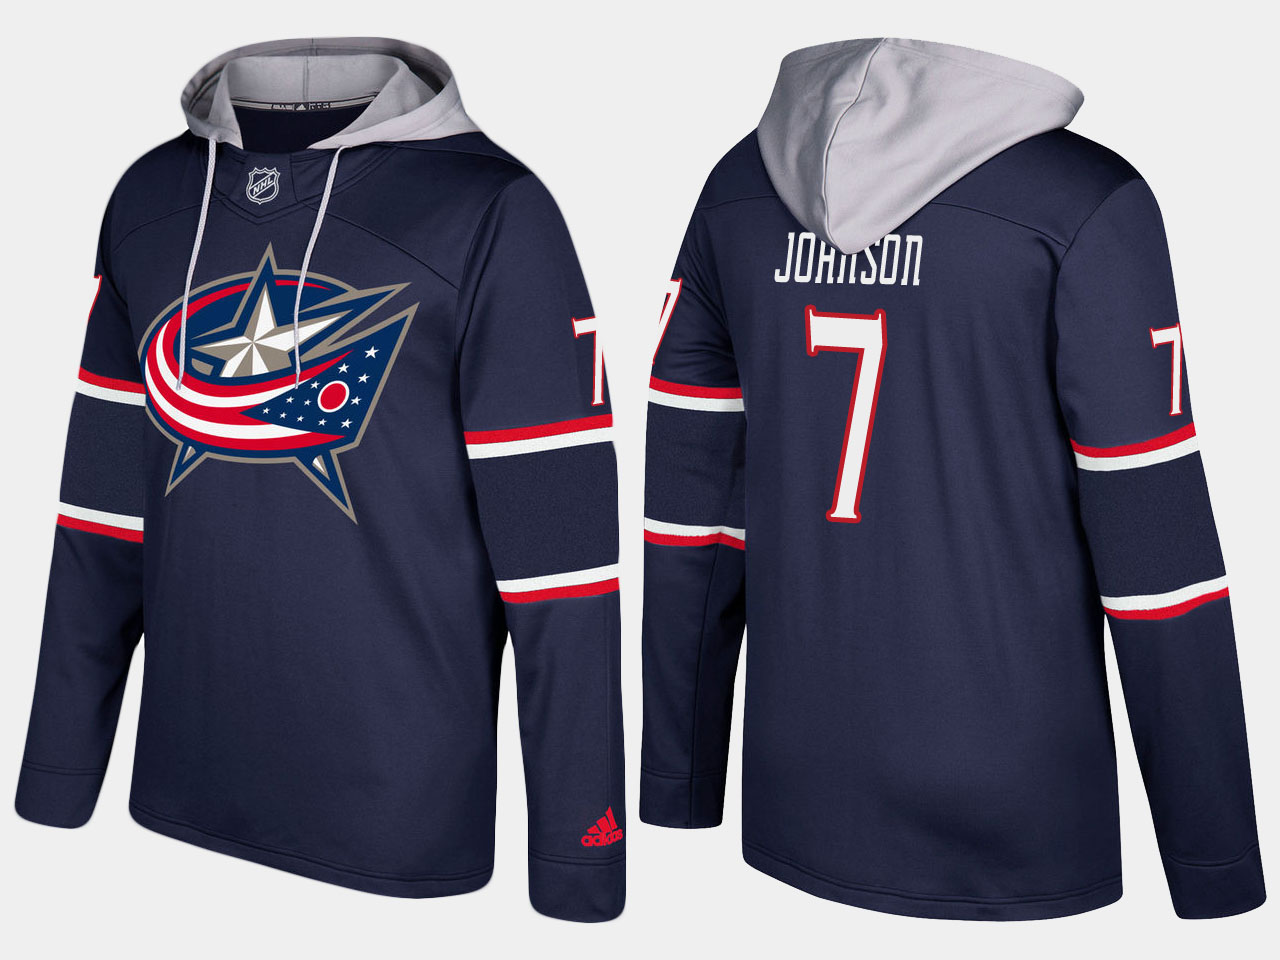 Men NHL Columbus blue jackets 7 jack johnson navy blue hoodie